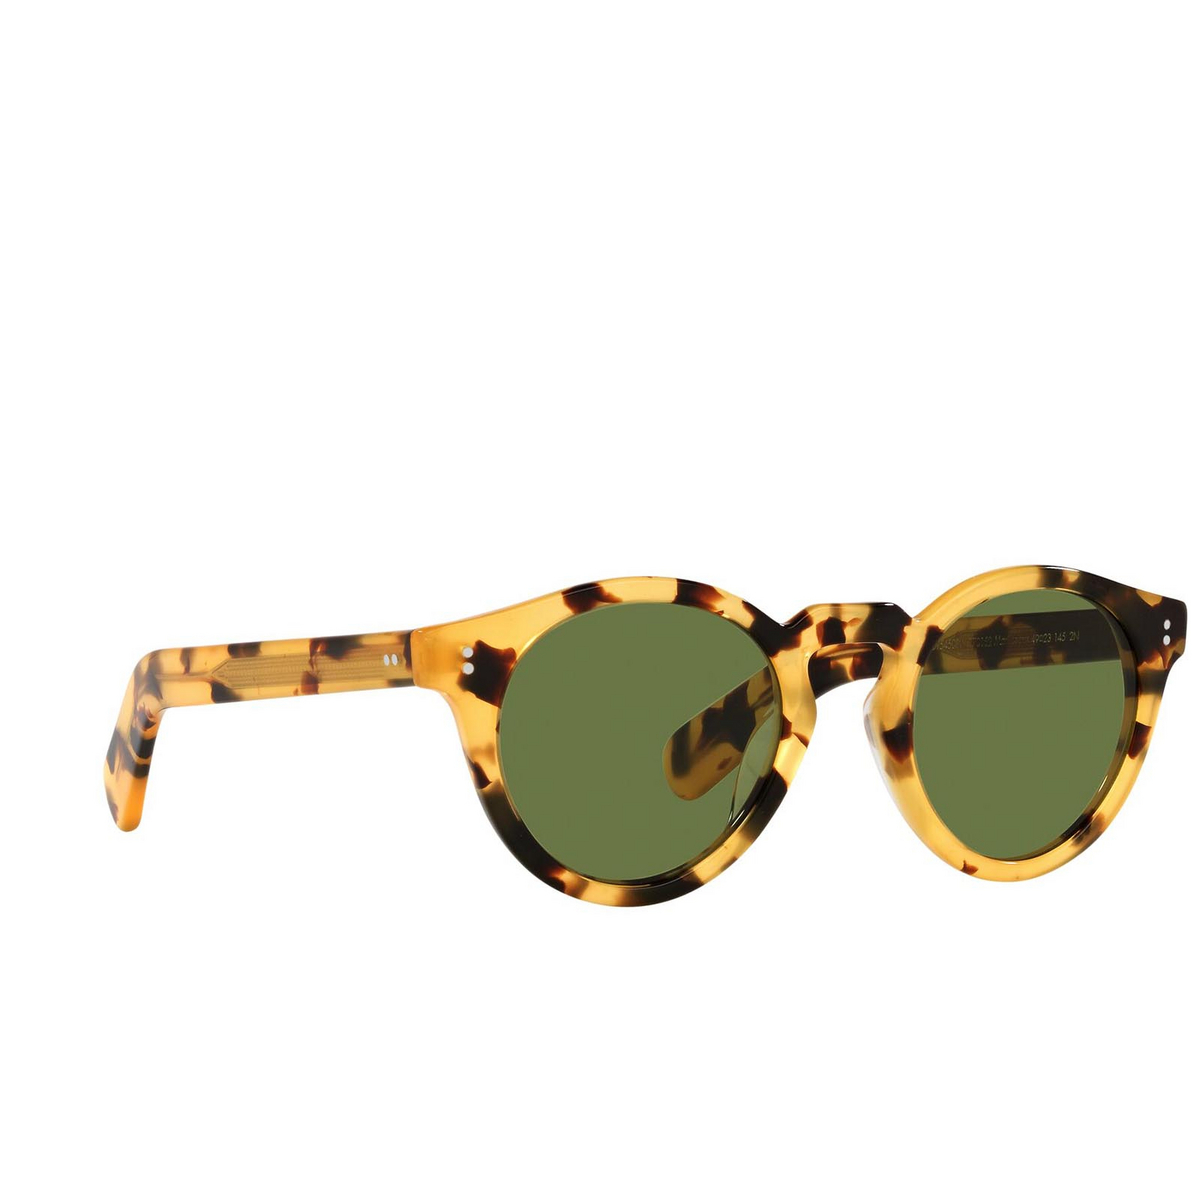 Oliver Peoples® : Martineaux OV5450SU color Ytb 170152.